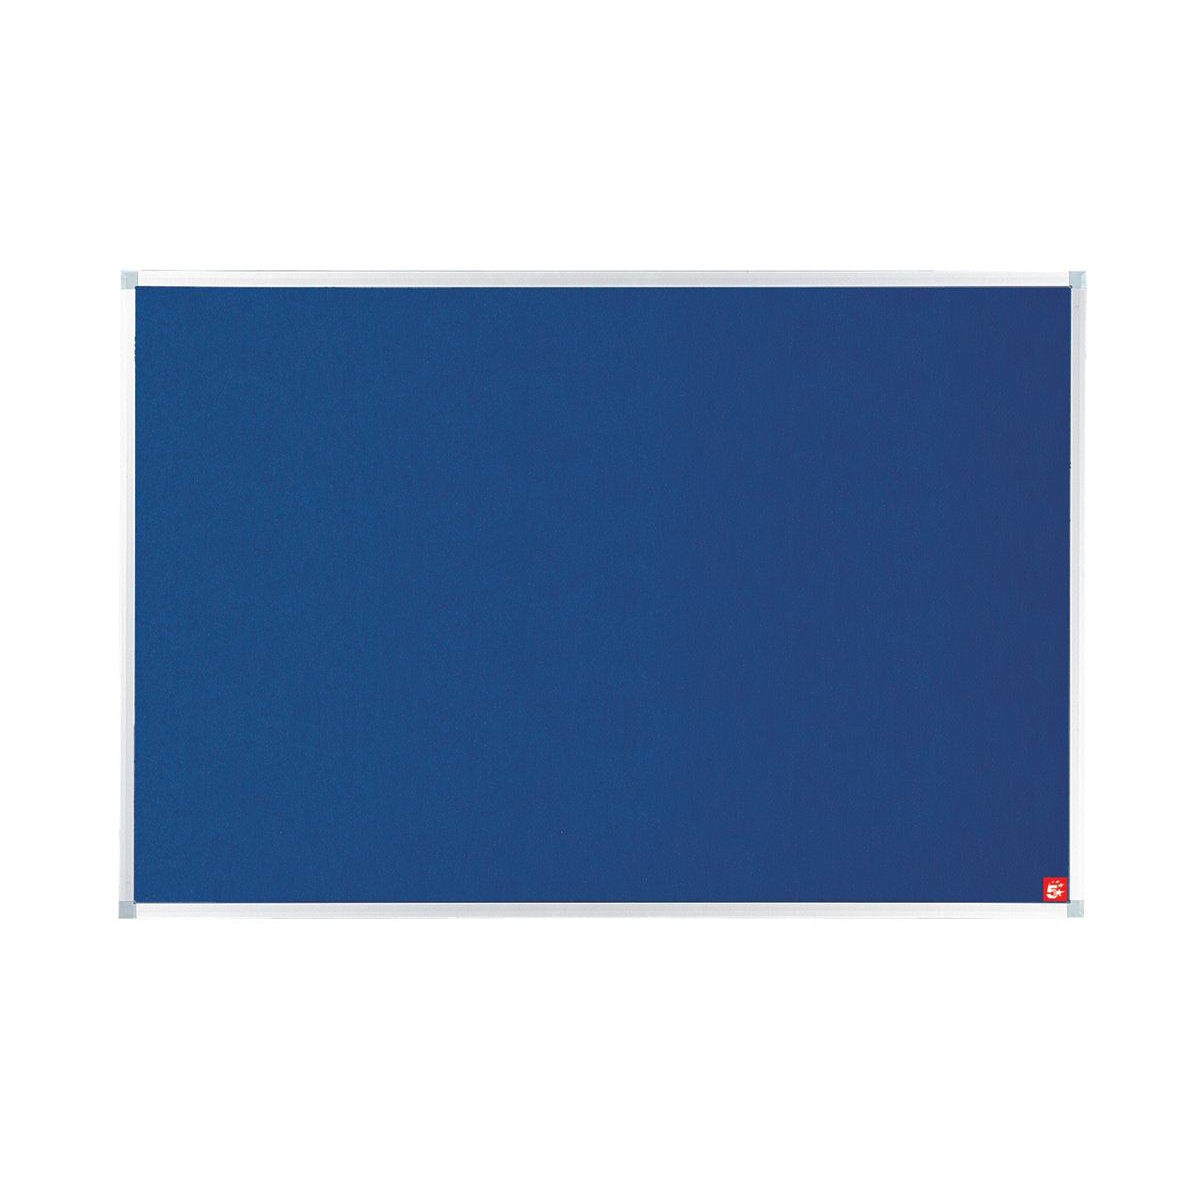 Felt 5 Star Office Felt Noticeboard with Fixings and Aluminium Trim W1200x900mm Blue